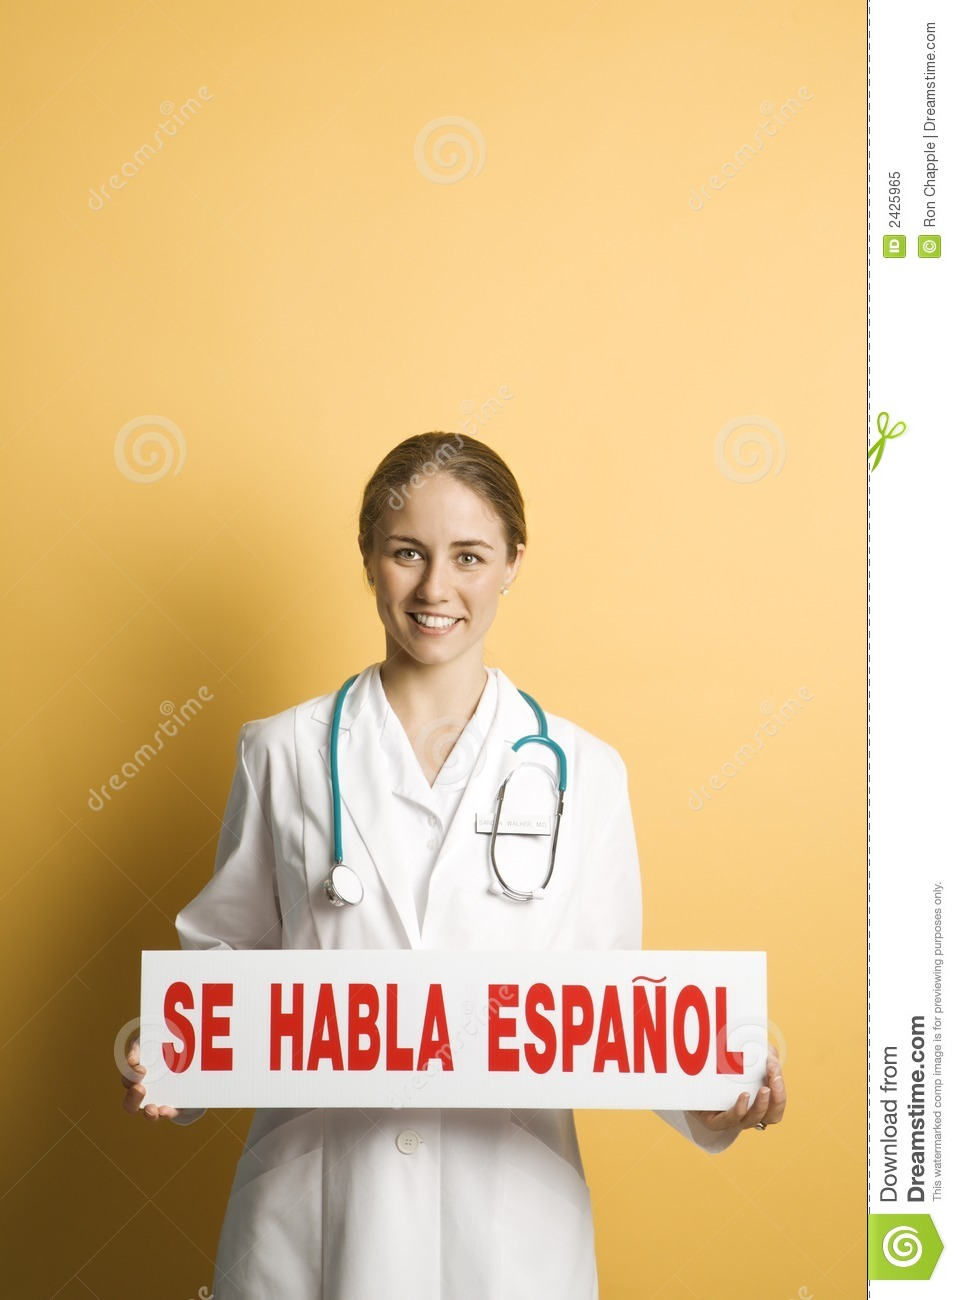 Doctor And Spanish Sign. Royalty Free Stock Photo - Image: 2425965